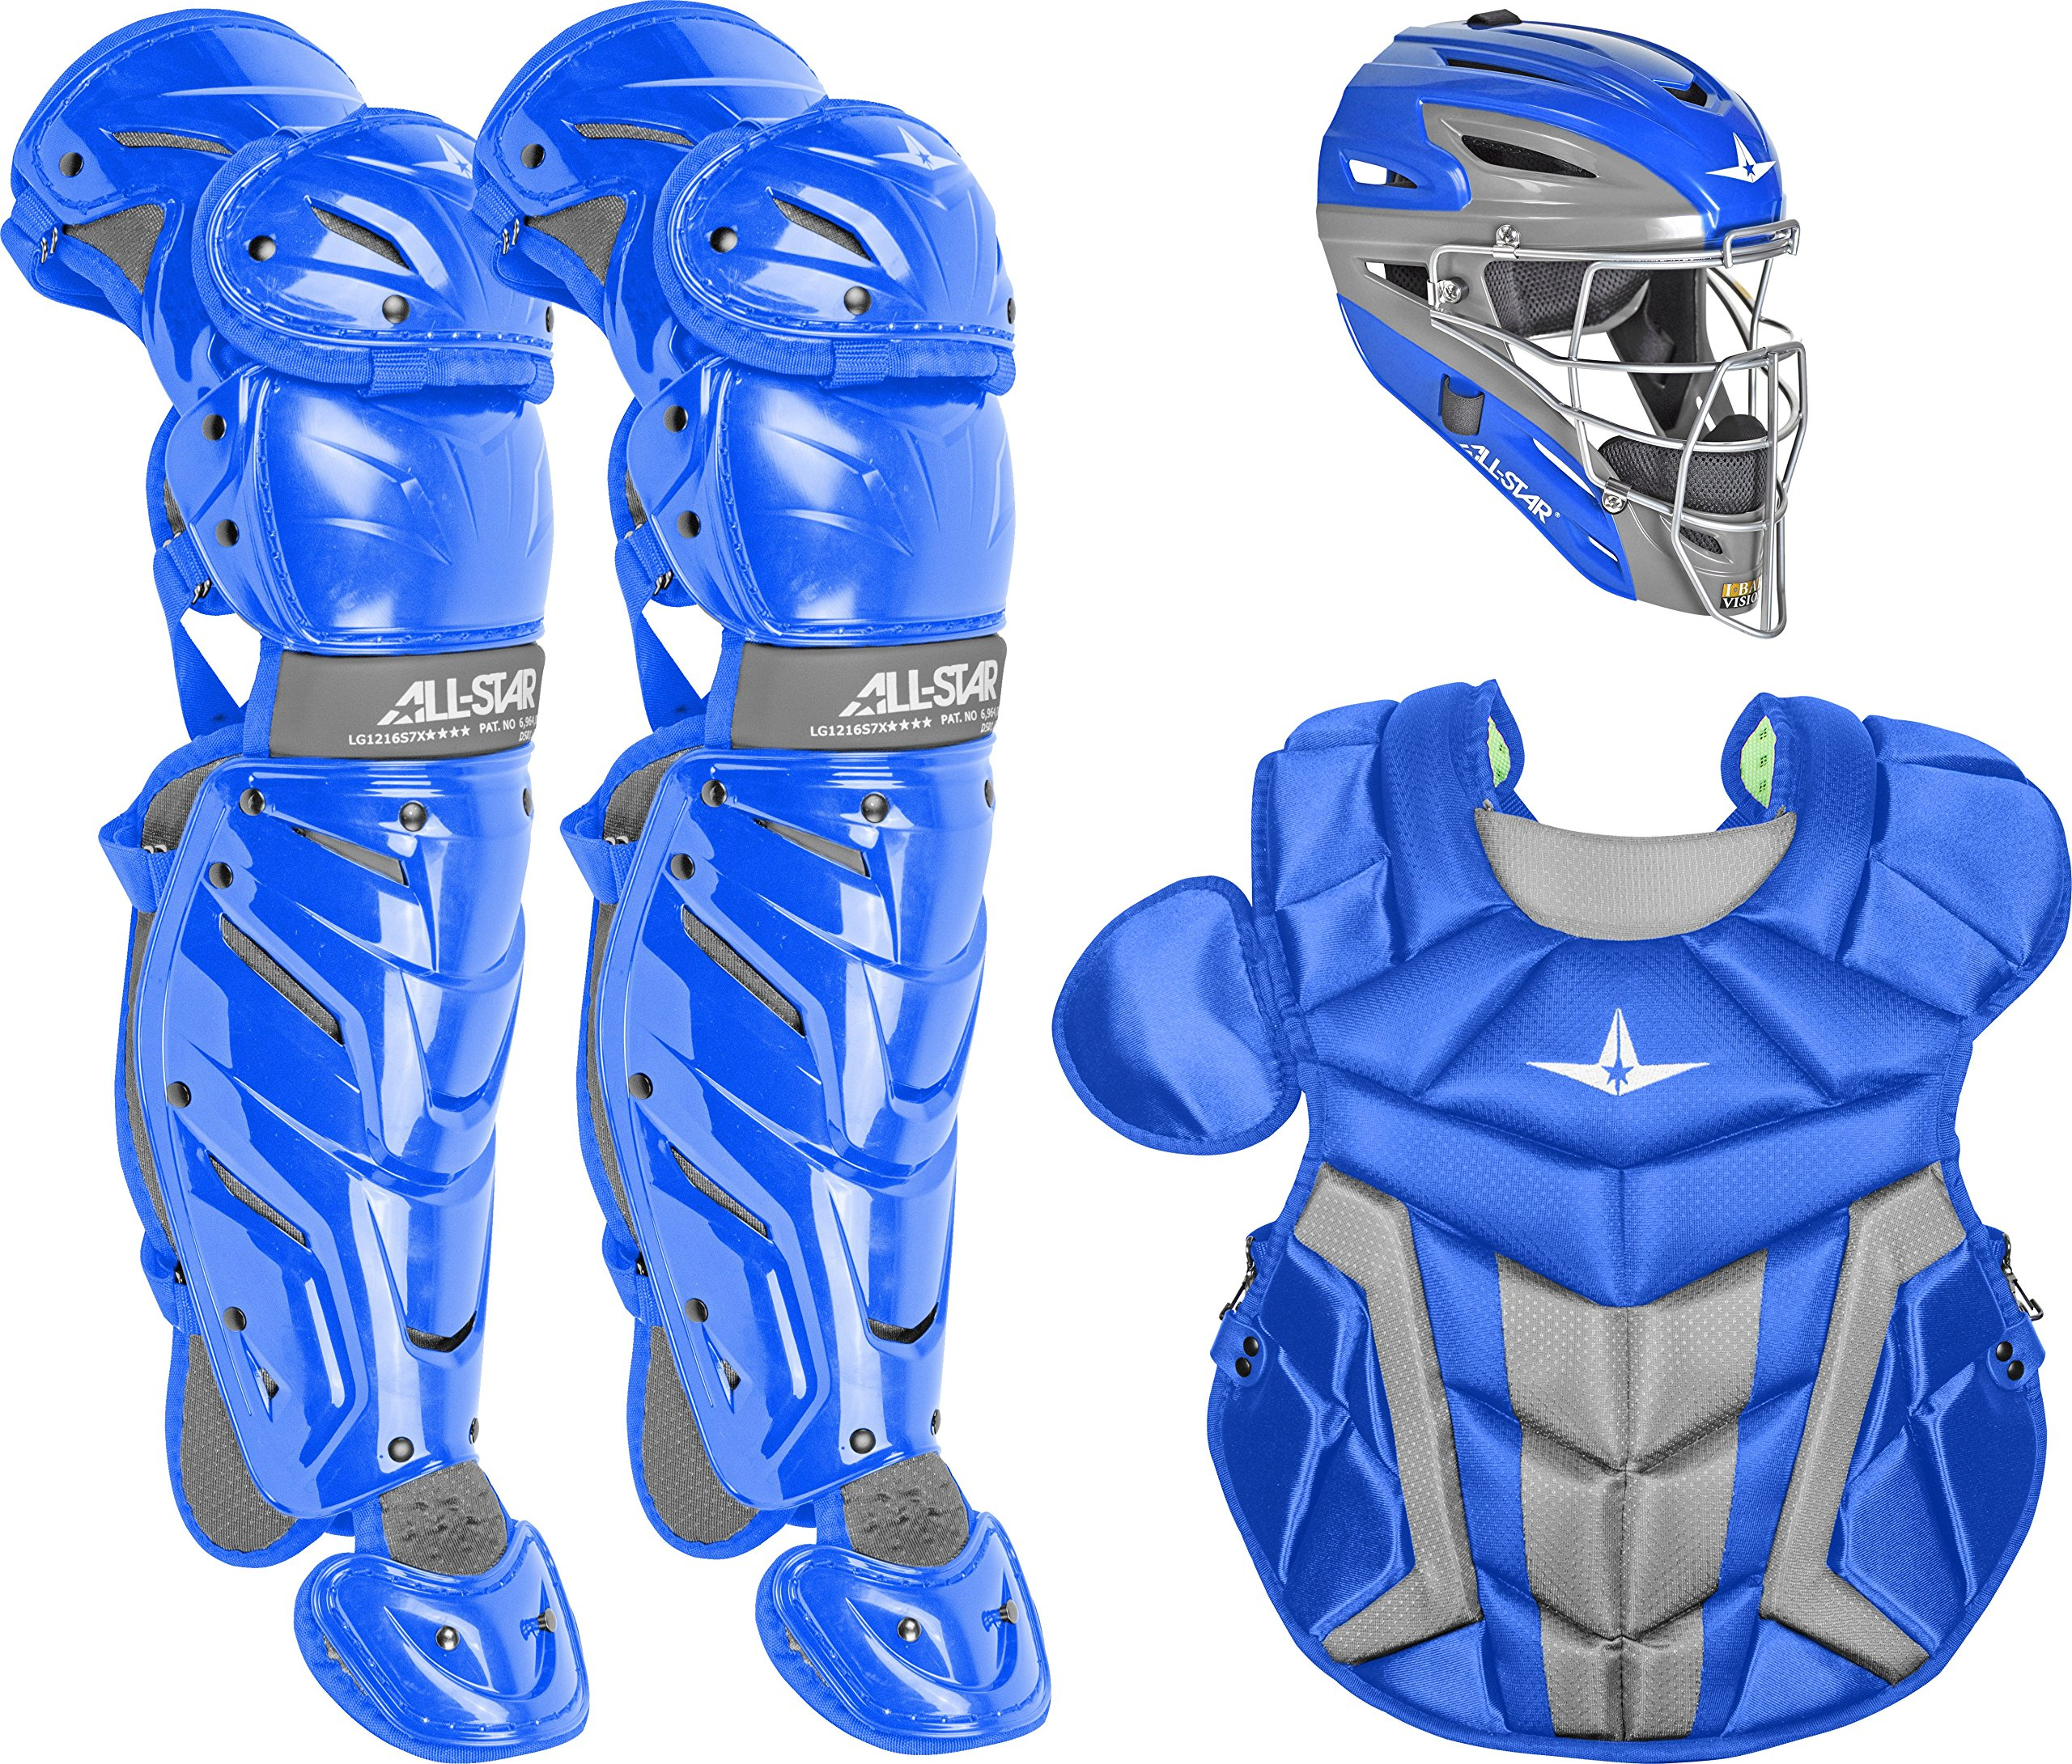 All-Star Inter System7 Axis Pro Catcher's Set (Ages 12-16) by All-Star